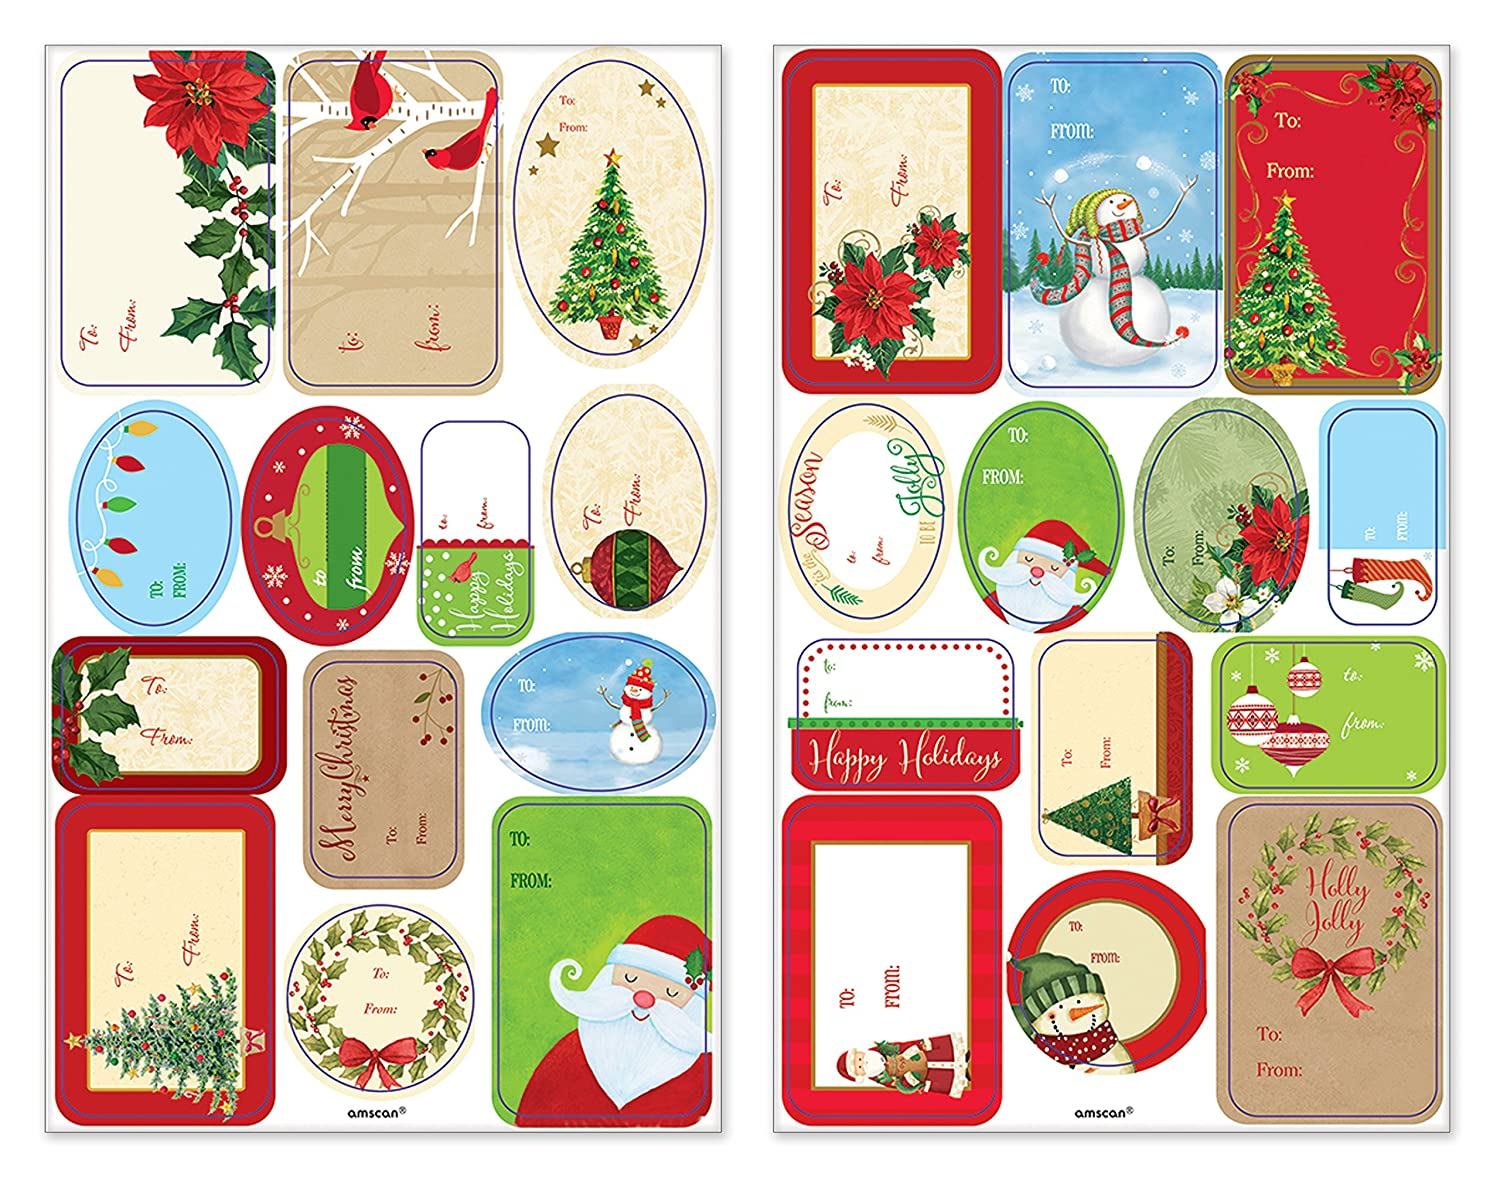 Amscan Christmas Santa Claus Stickers with Snowman 150 Stickers